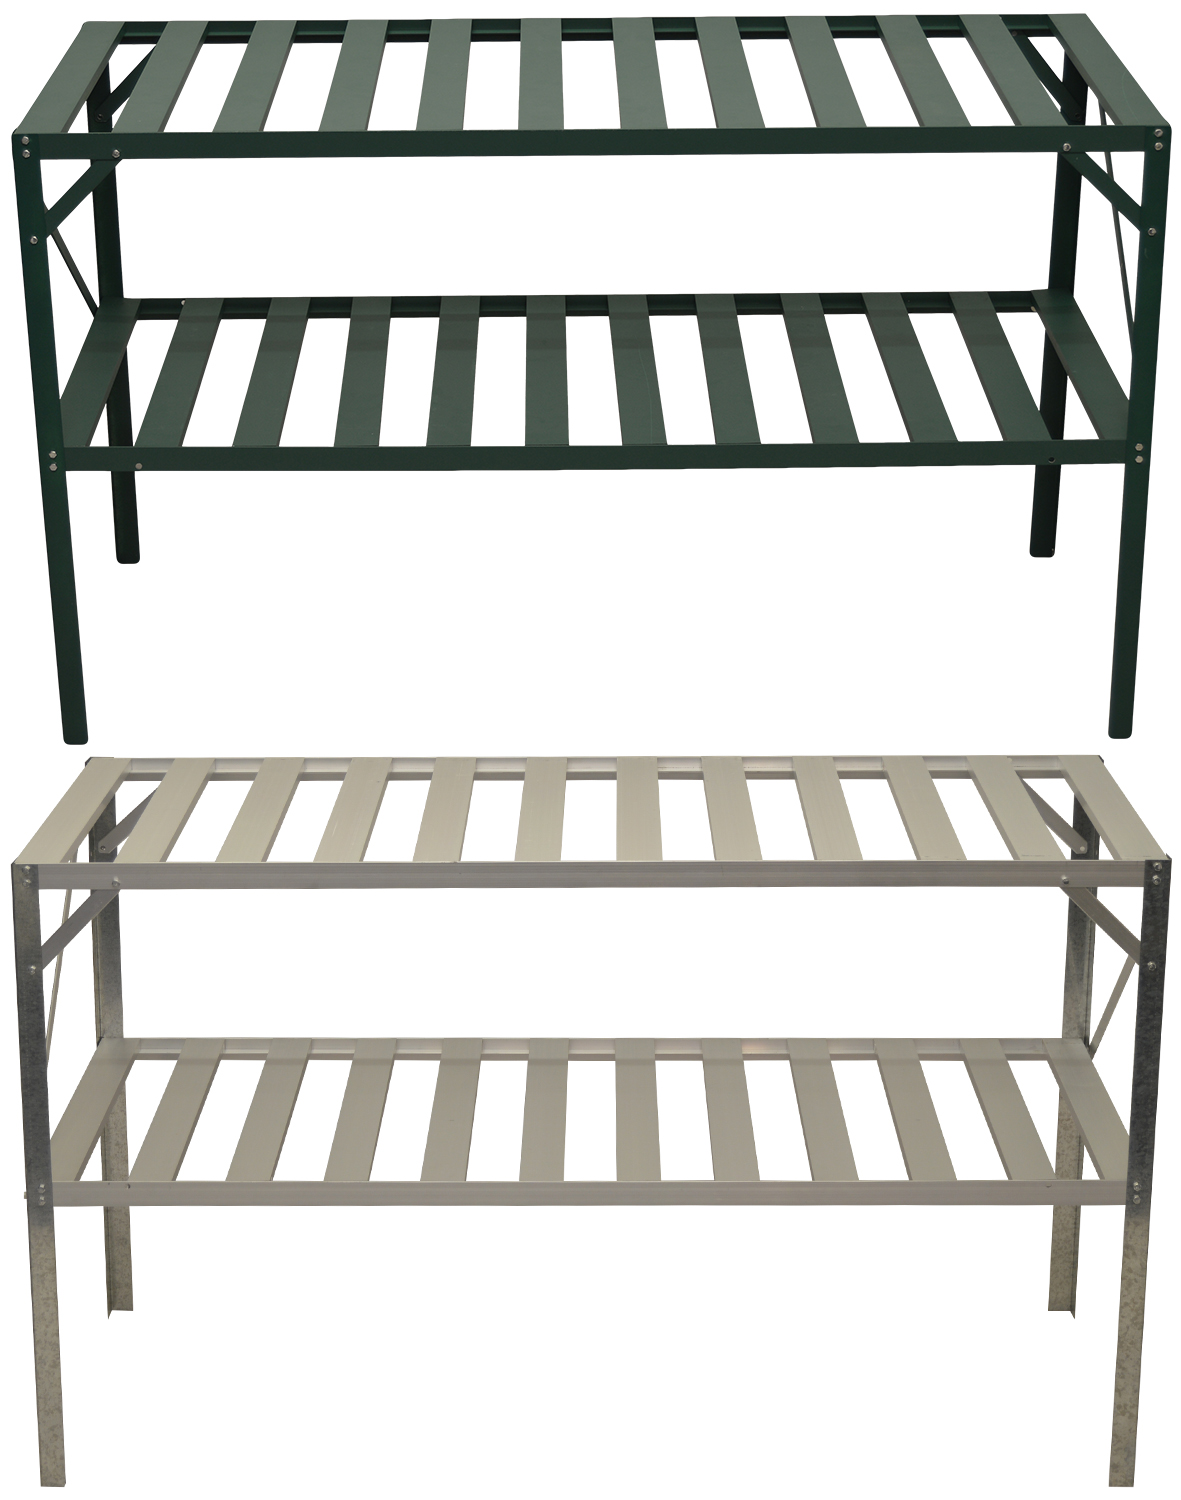 Woodside Greenhouse Metal Staging Bench Plant Potting